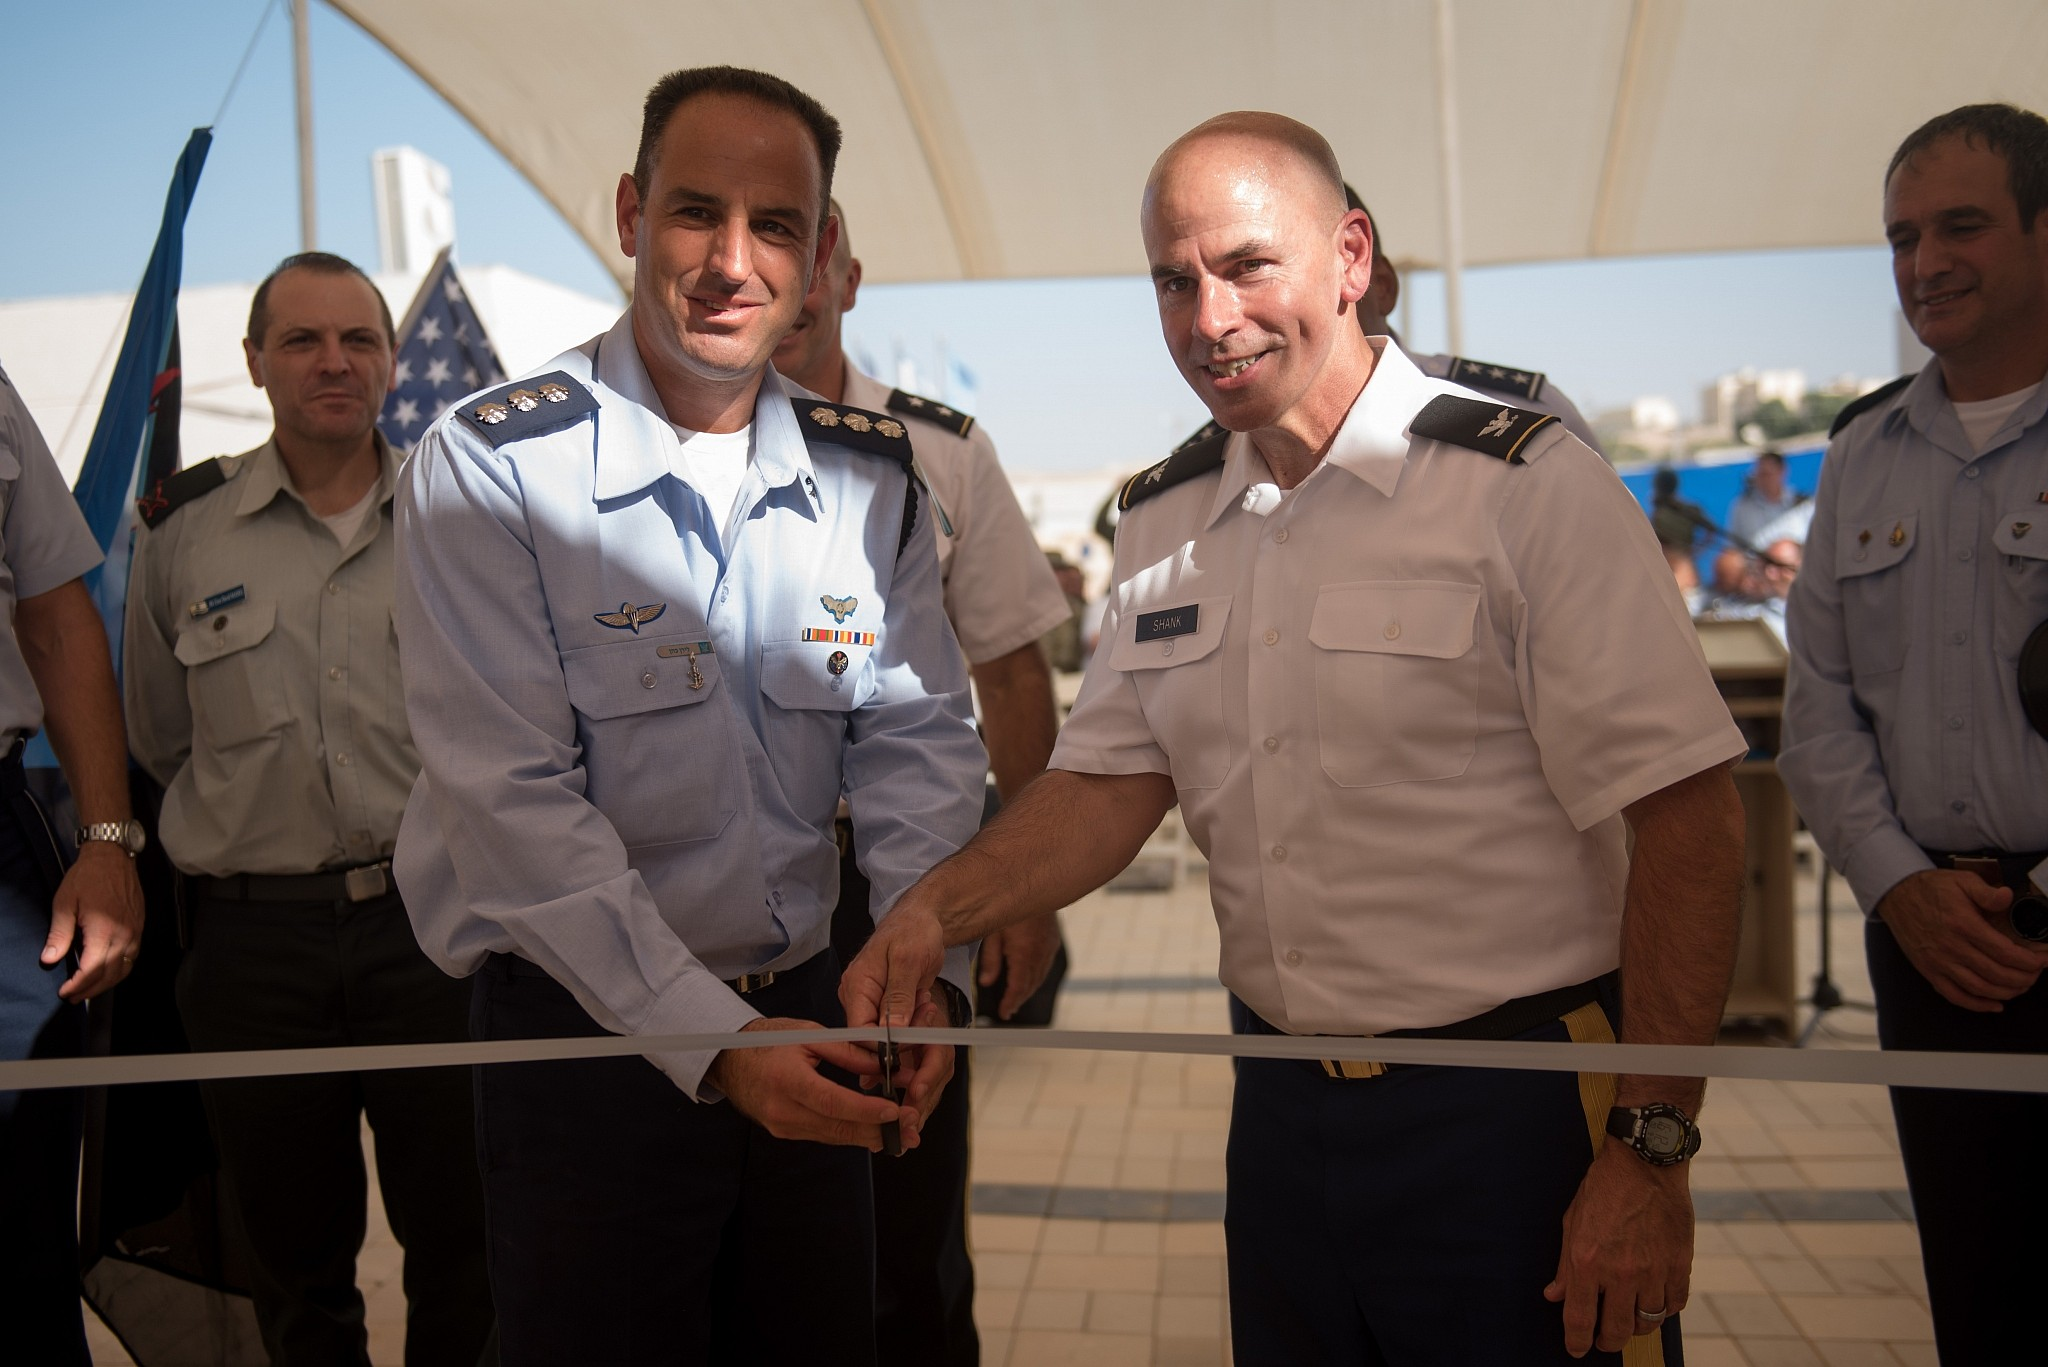 First official United States military base opens on Israeli soil